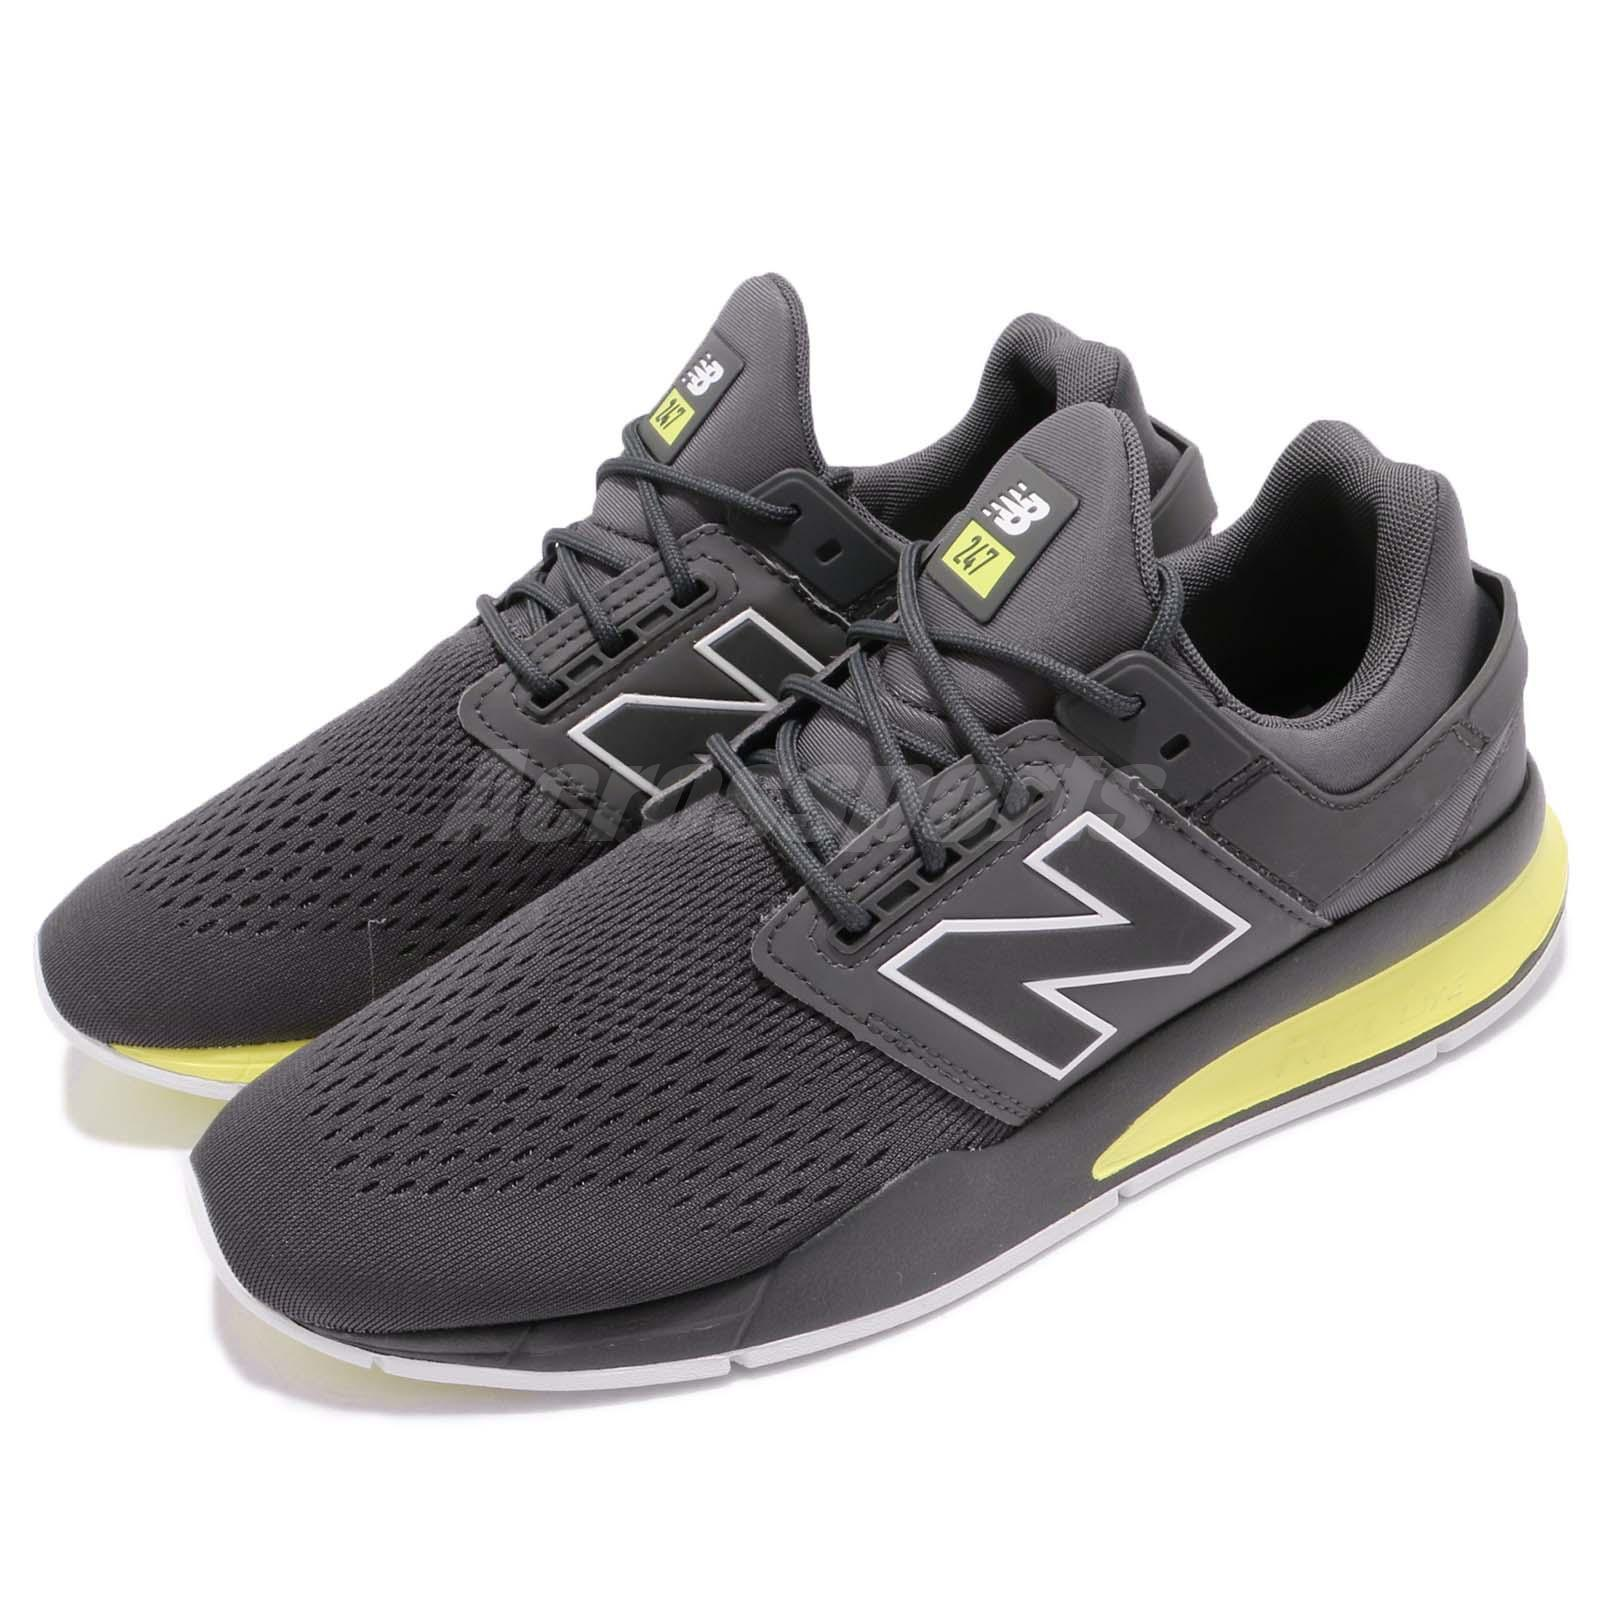 New Balance MS247TG D  Gris  Yelfaible homme fonctionnement Casual chaussures Sneakers MS247TGD